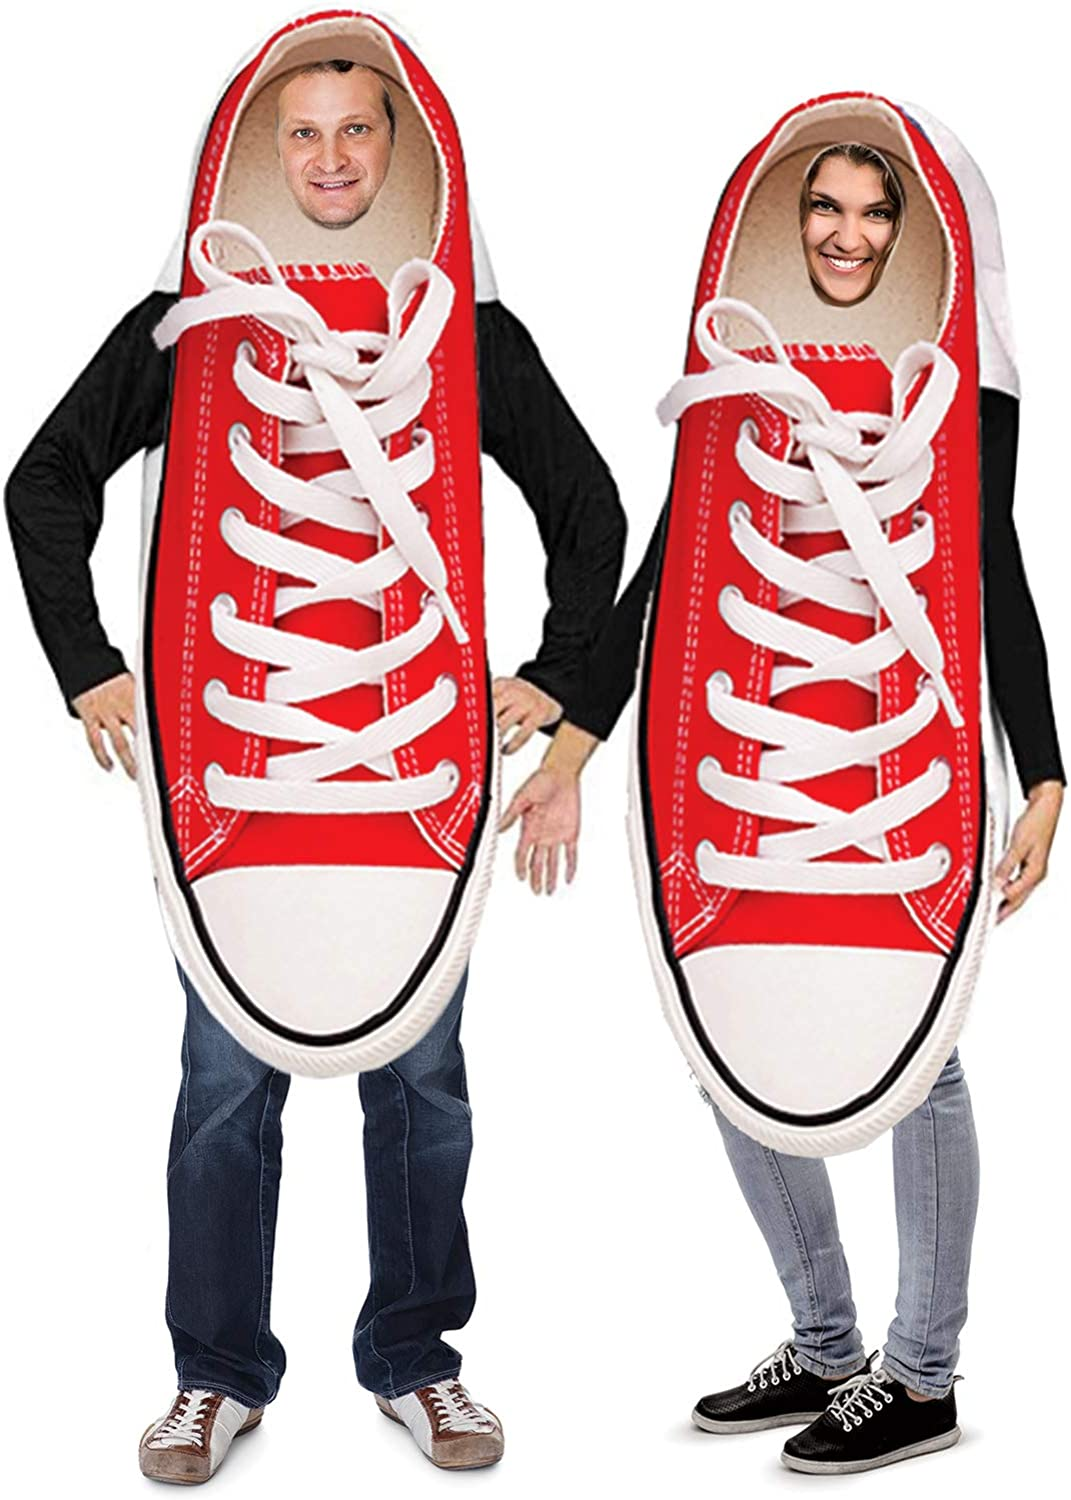 Amazon Com Tigerdoe Couples Costumes Novelty Sneaker Costume Funny Adult Halloween Costumes 2 Pc Clothing